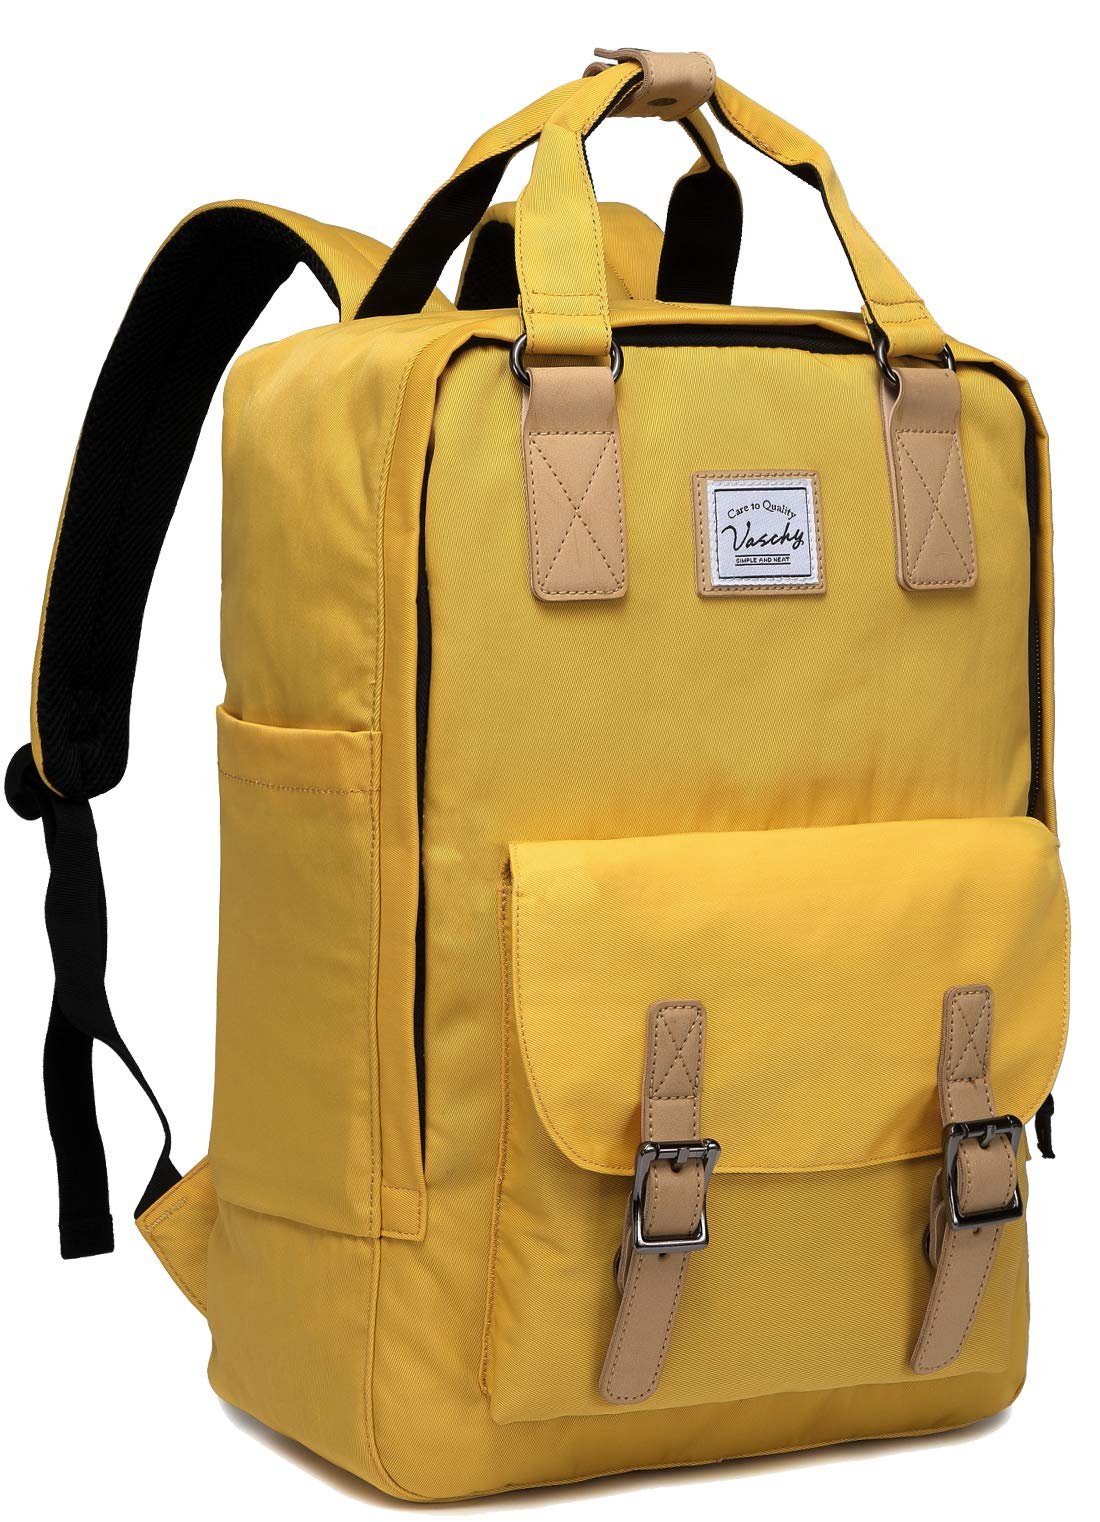 Laptop Backpack for Men and Women,VASCHY Unisex Vintage Water Resistant Casual Daypack Rucksack Bookbag for School College Yellow by VASCHY